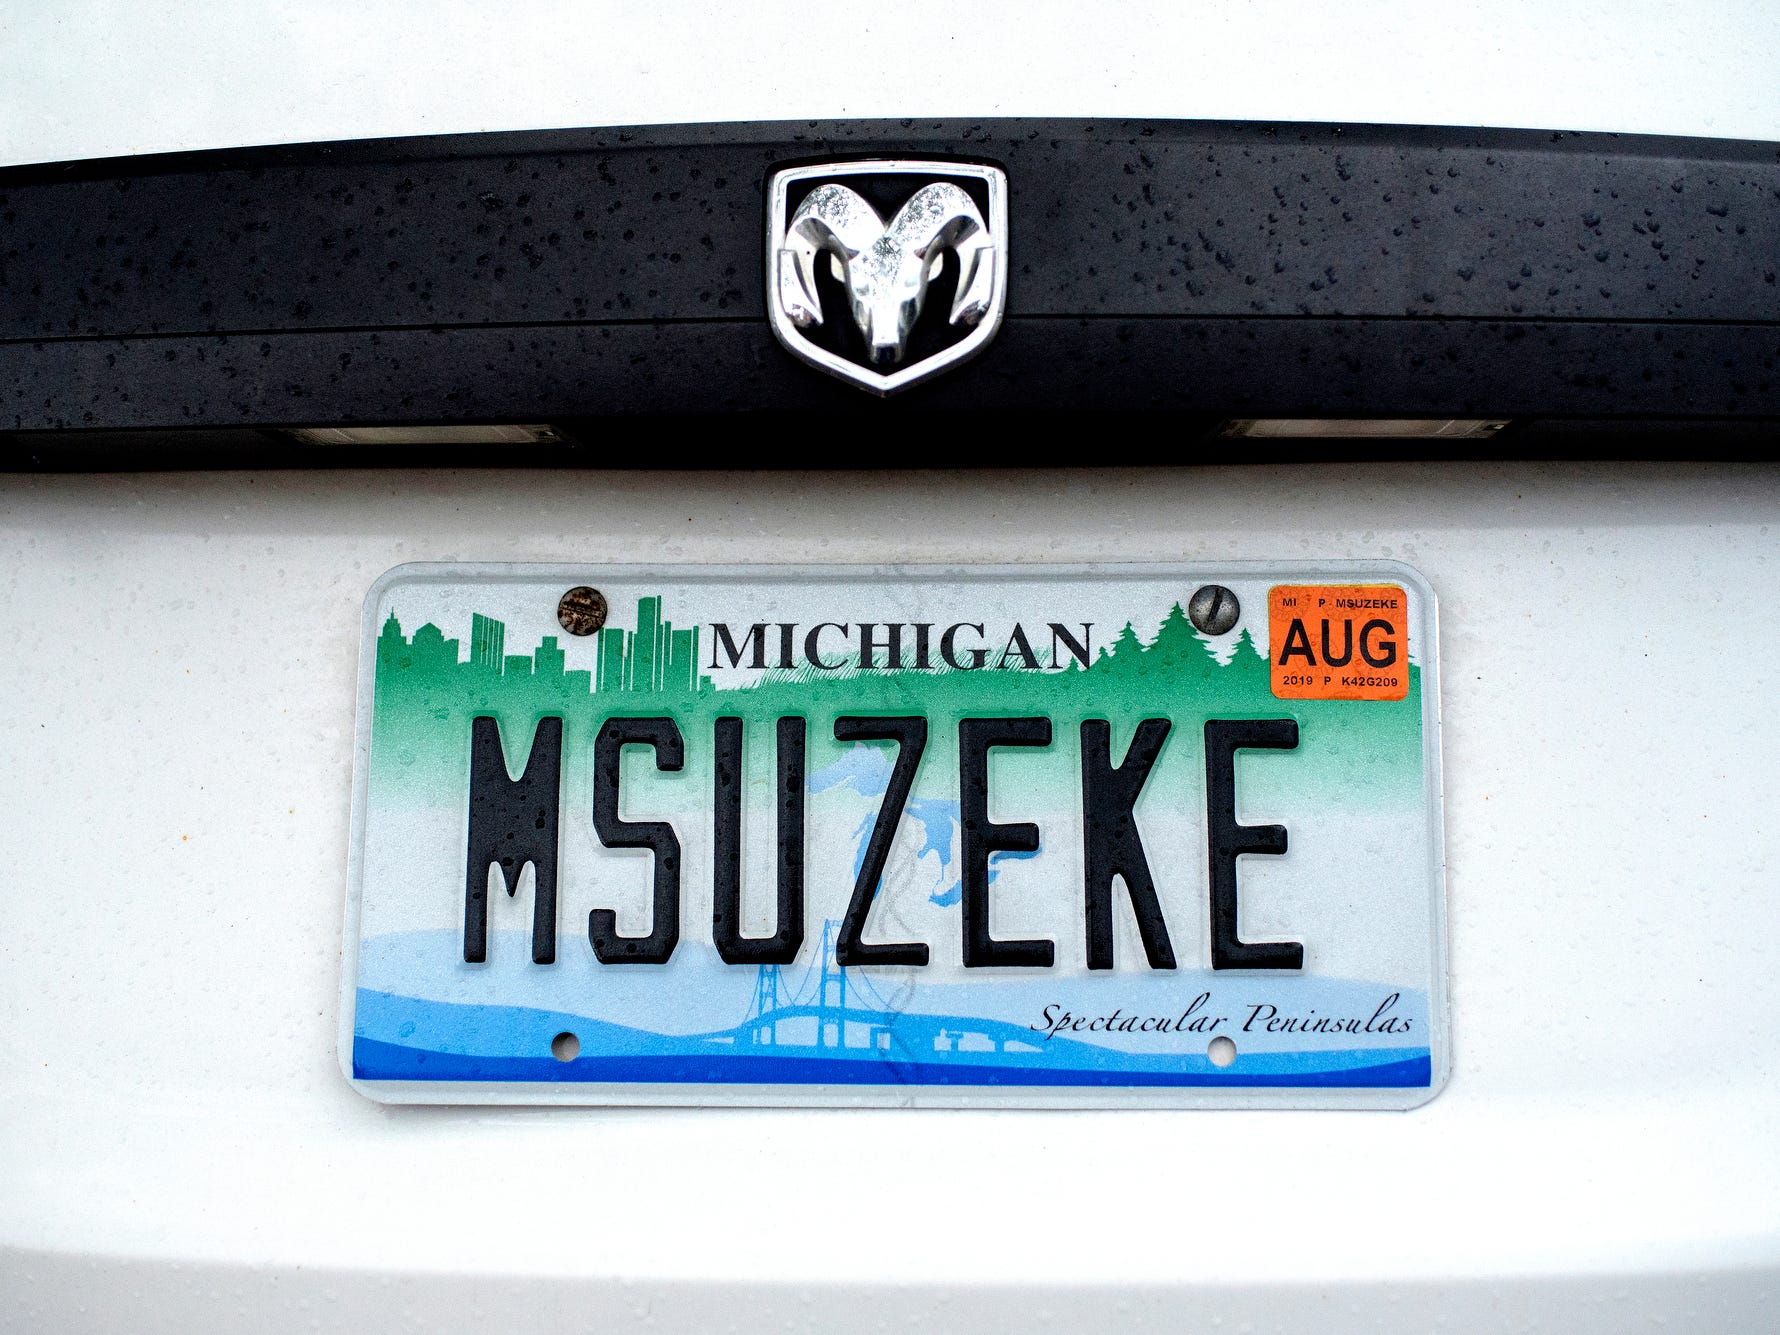 Caretaker Jim Foley's custom license plate reads 'MSUZEKE,' named for Zeke the Wonderdog IV.